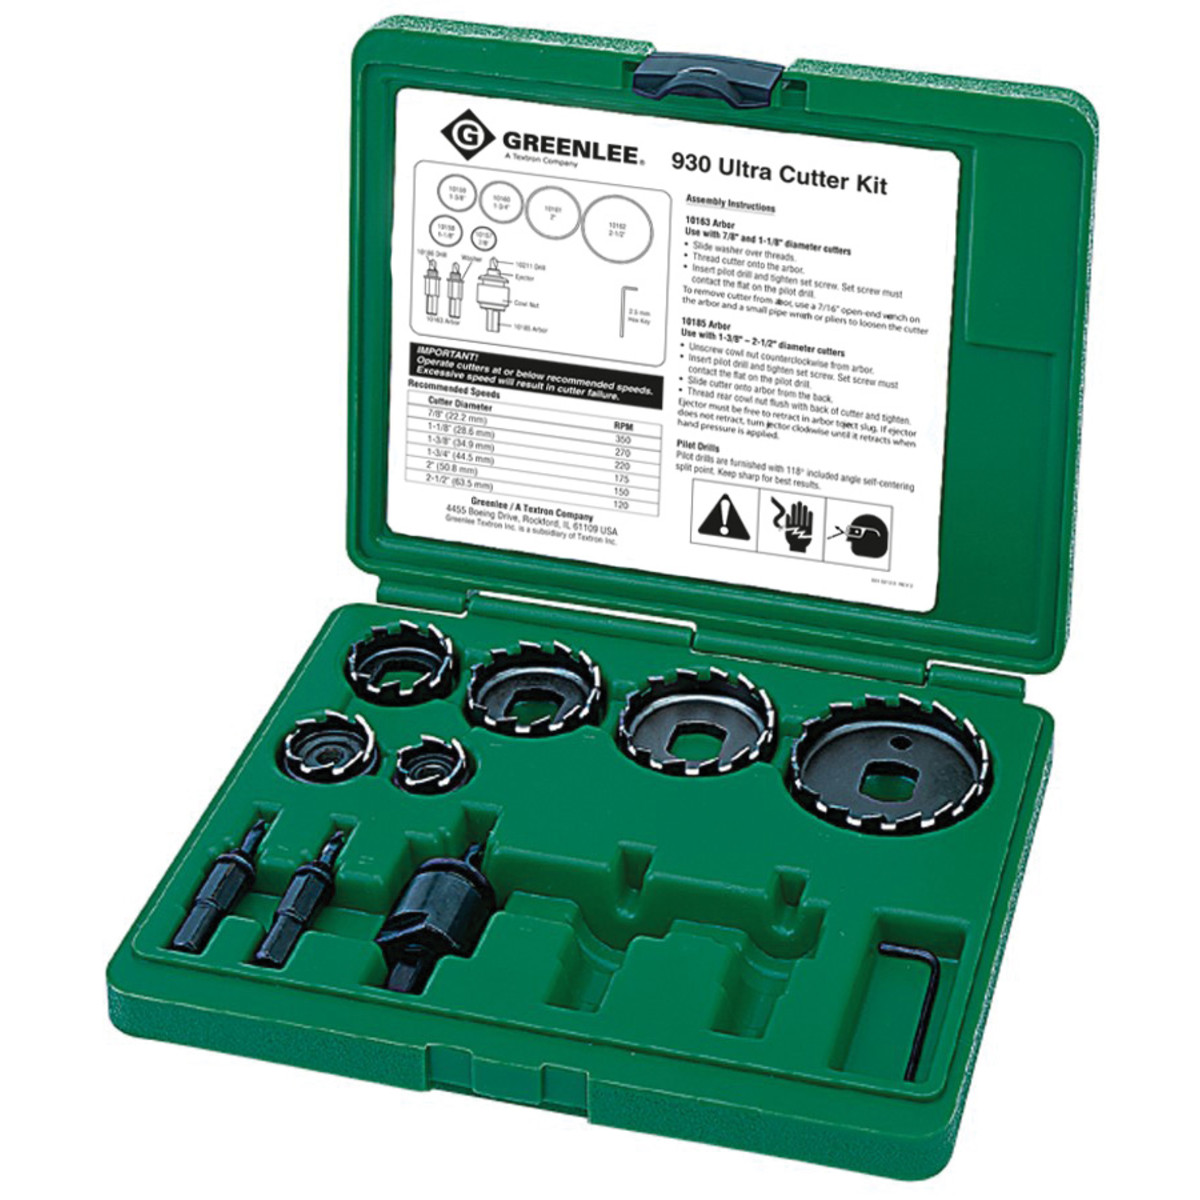 """Greenlee 930 Ultra Hole Cutter Kit, 7/8"""" thru 2-1/2"""" Cutters, Arbors & Hex Wrench, with Case"""